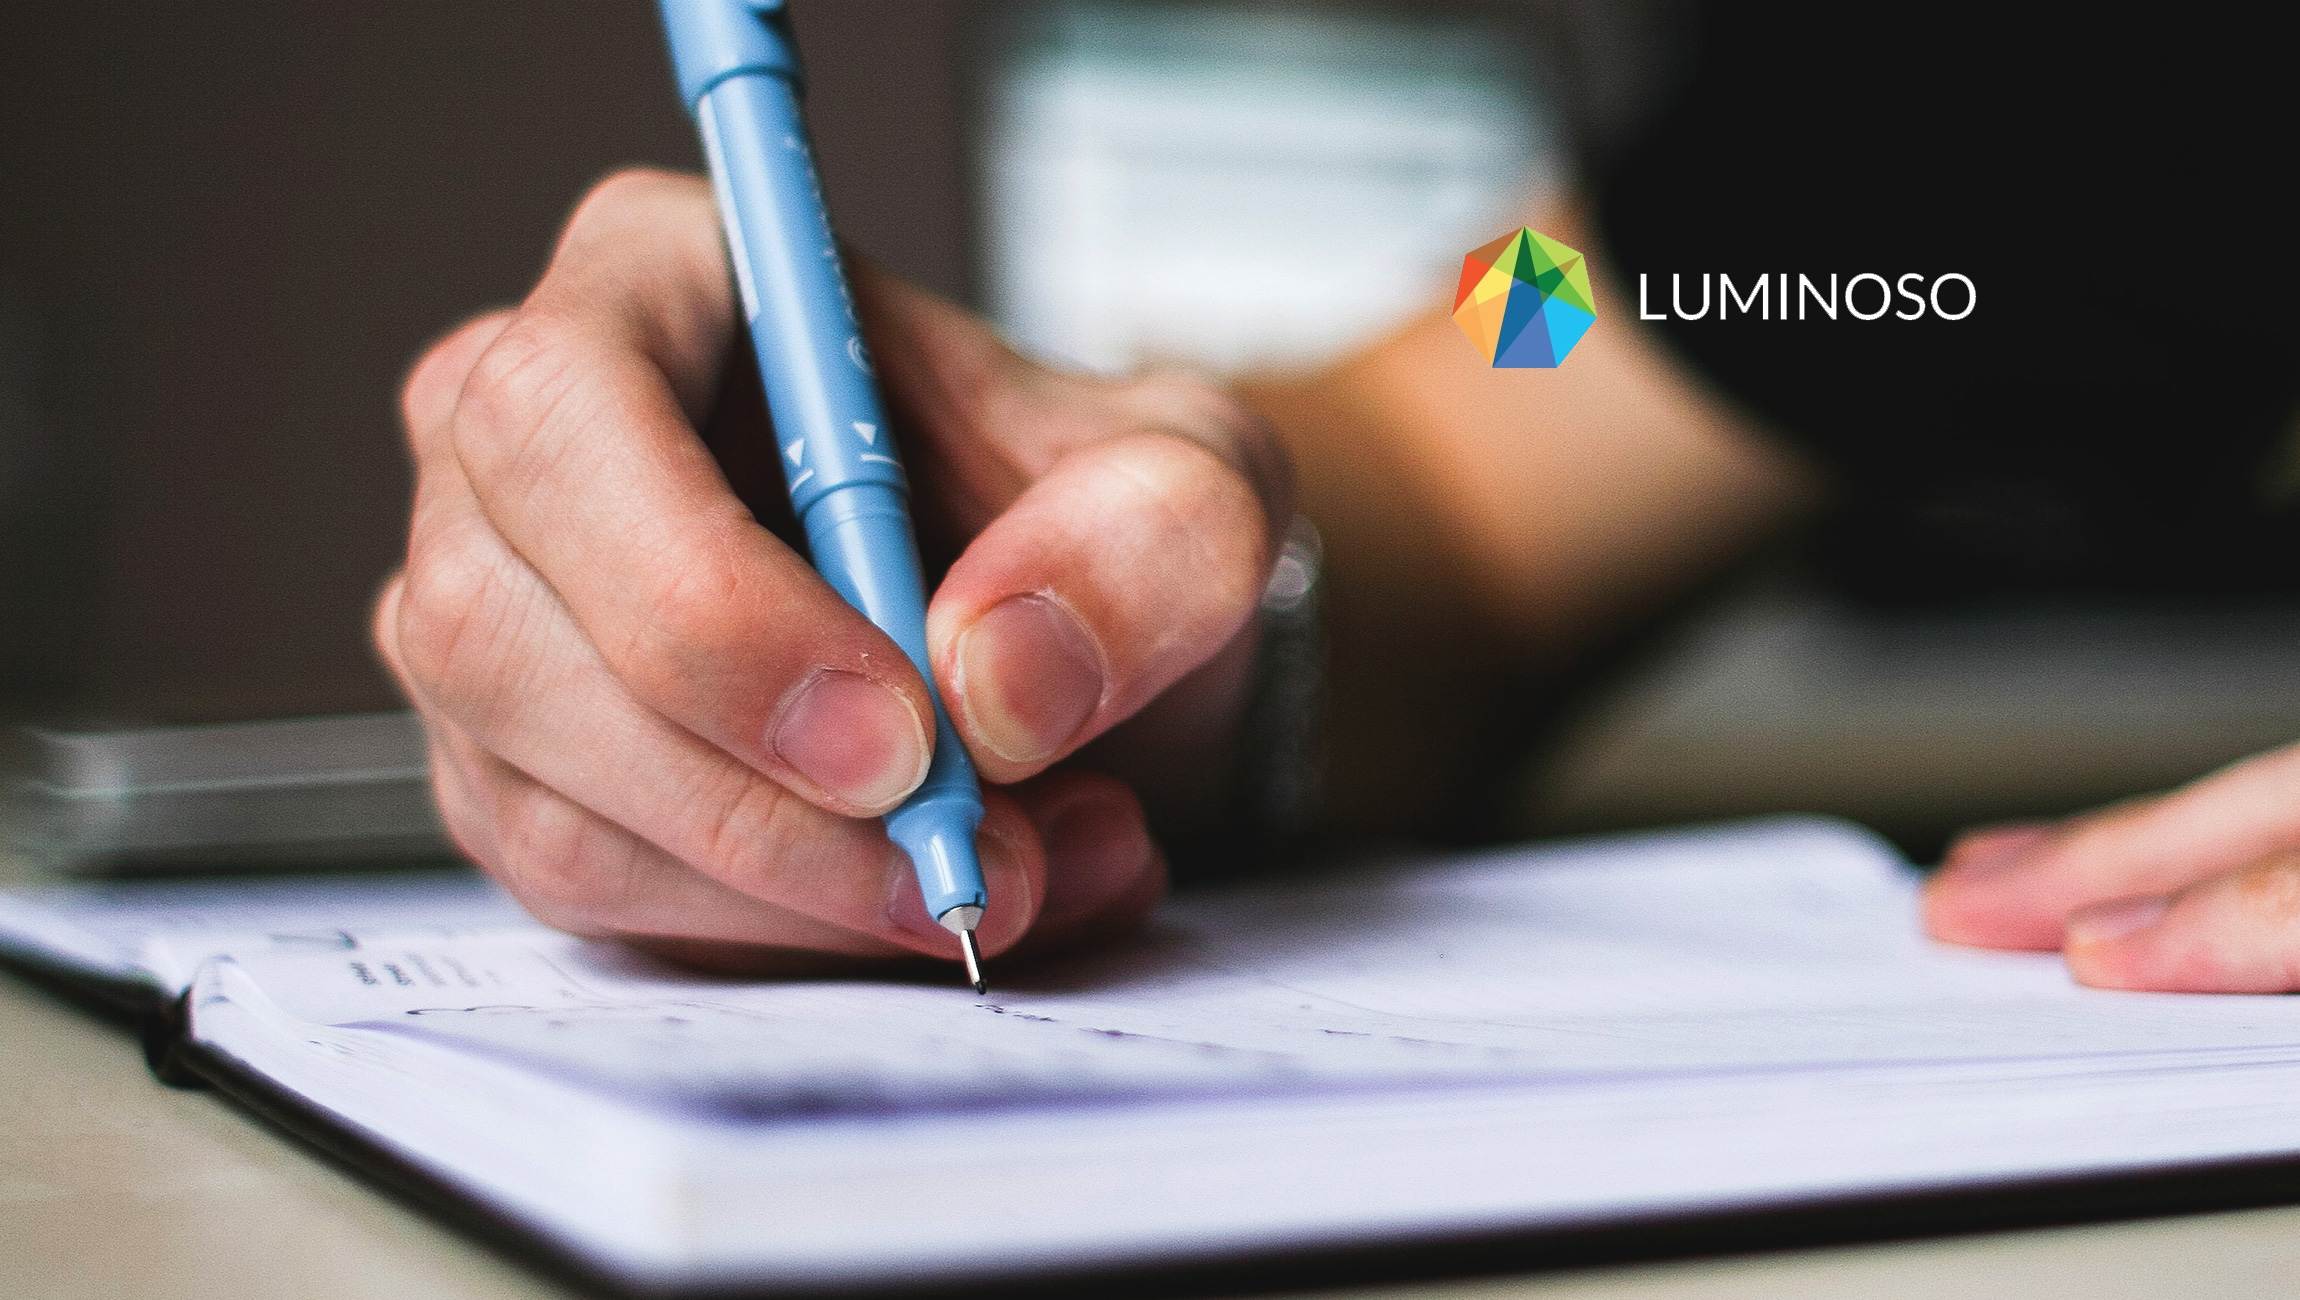 Luminoso Launches New Capabilities to Accelerate Customer Feedback Analysis for Businesses Worldwide